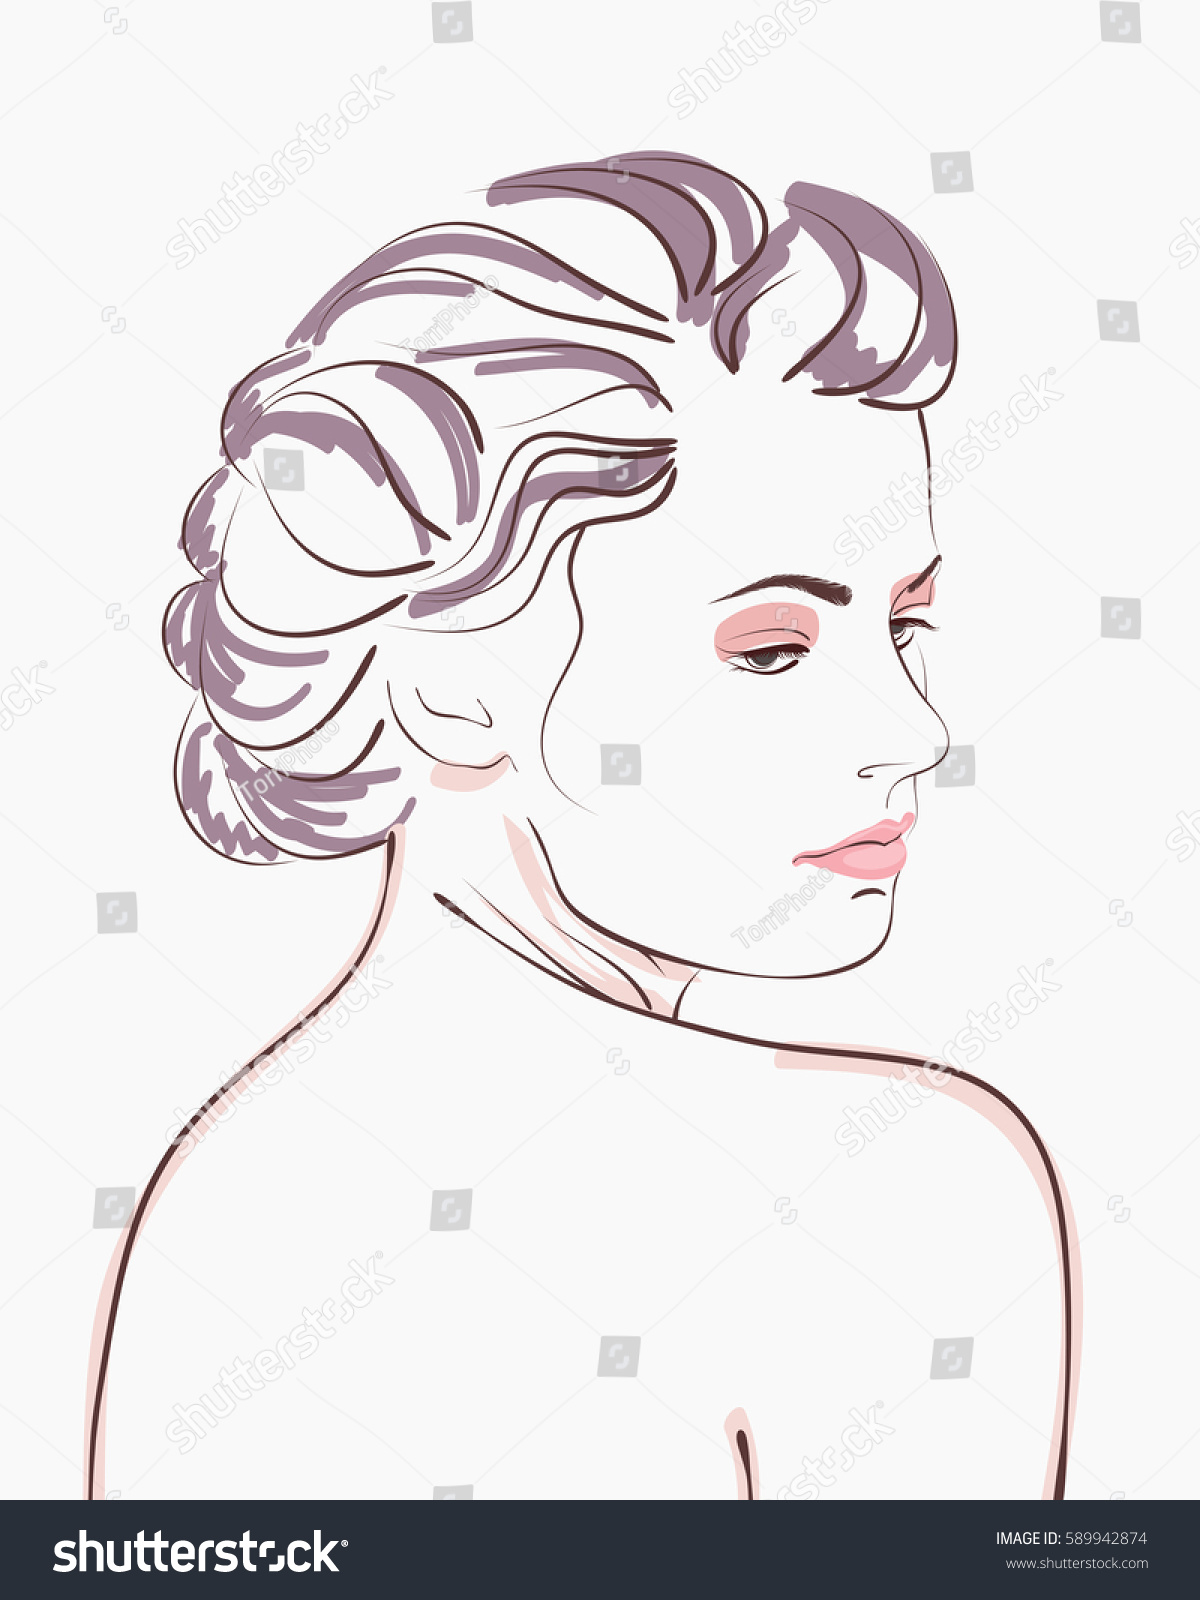 https://www.shutterstock.com/image-vector/vintage-style-woman-portrait-vector-illustration-589942874